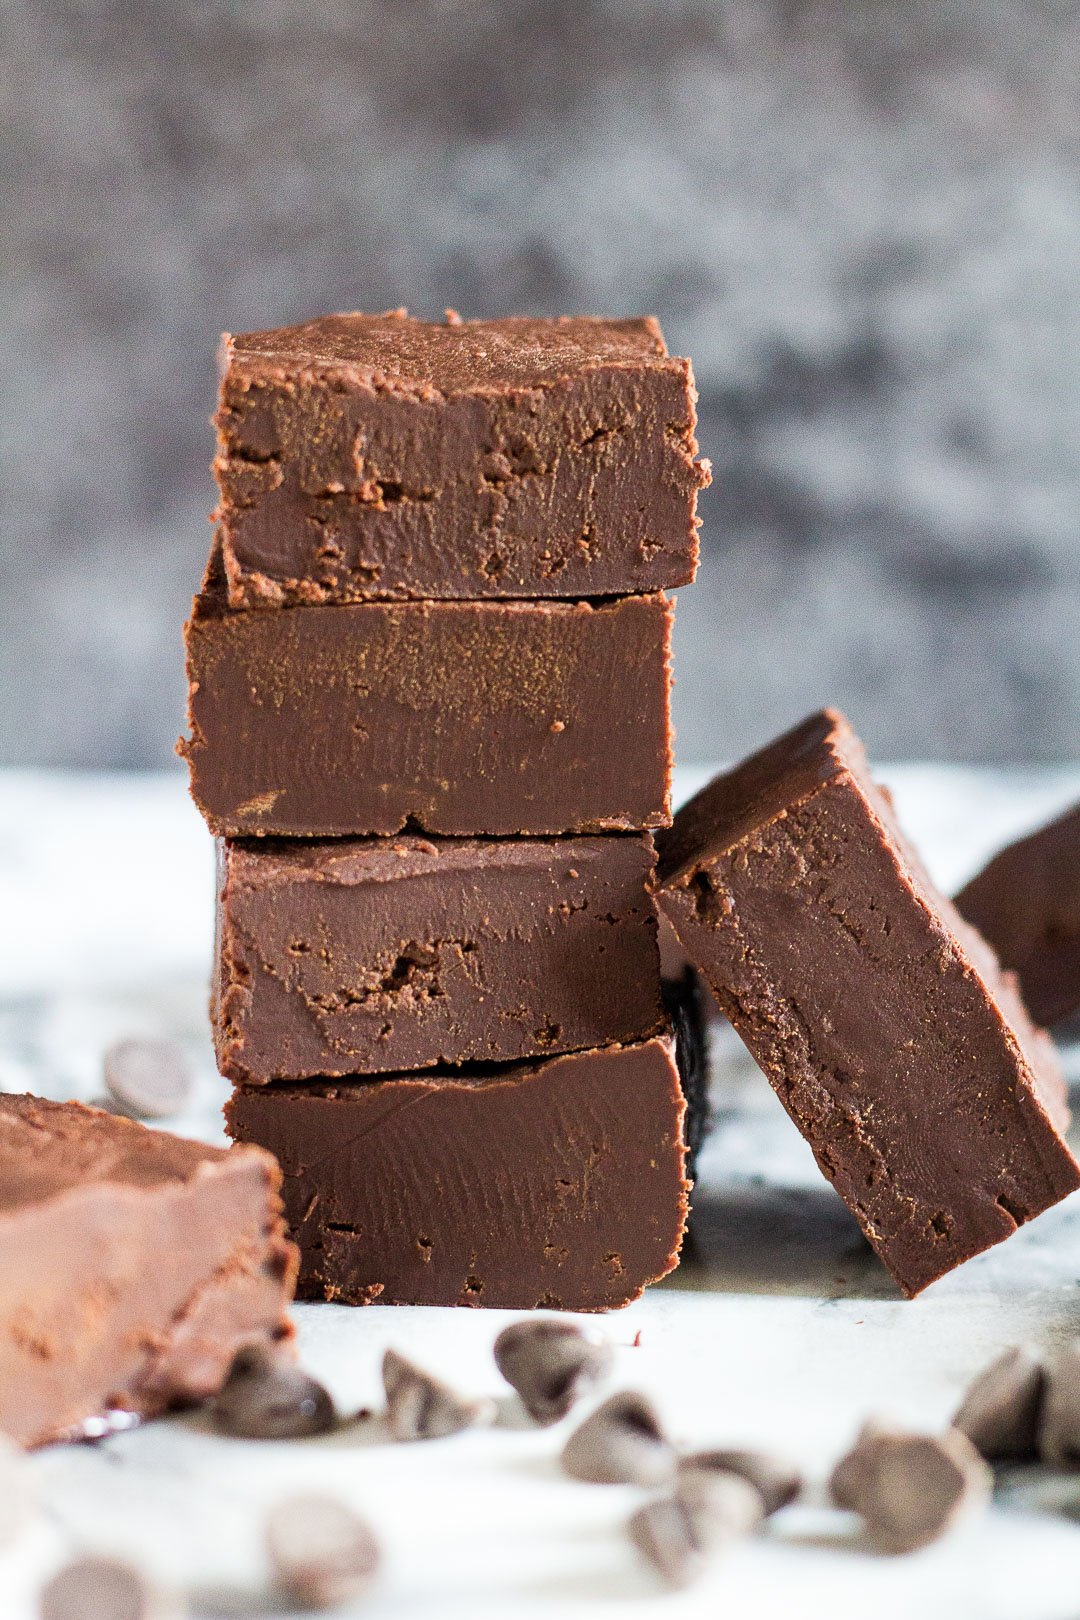 A stack of four pieces of chocolate fudge with one piece leaning up against it.